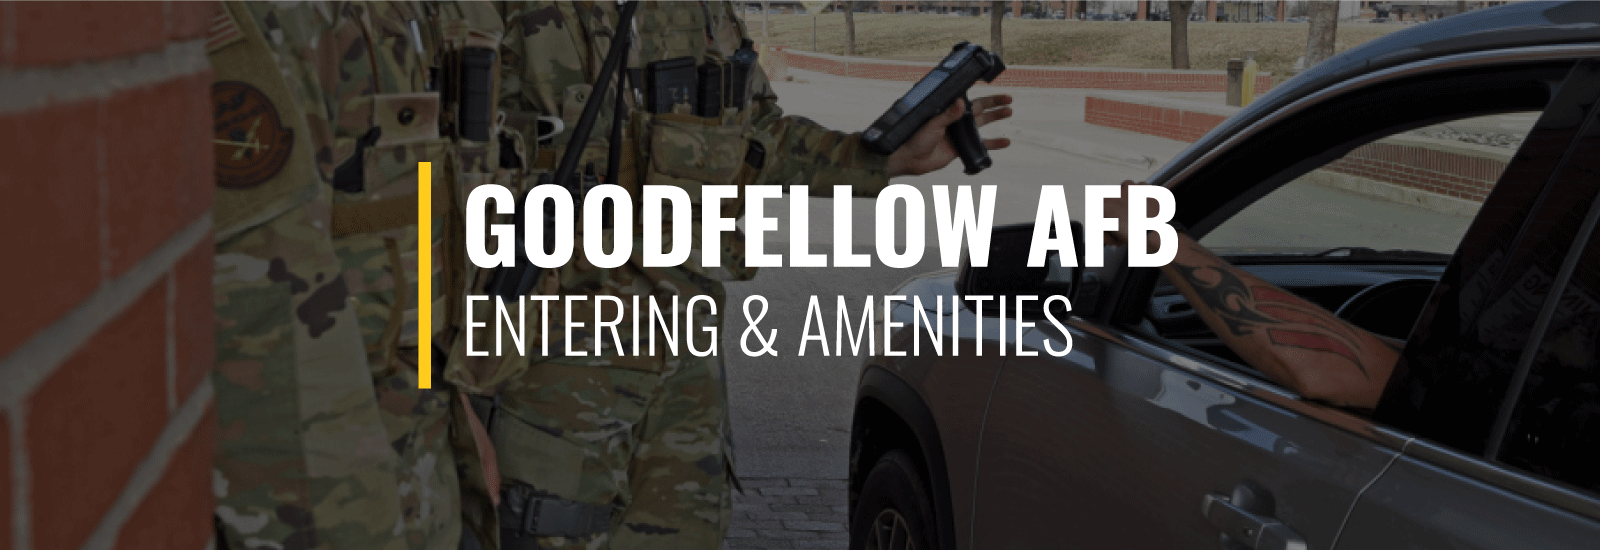 Entering Goodfellow Air Force Base and Amenities